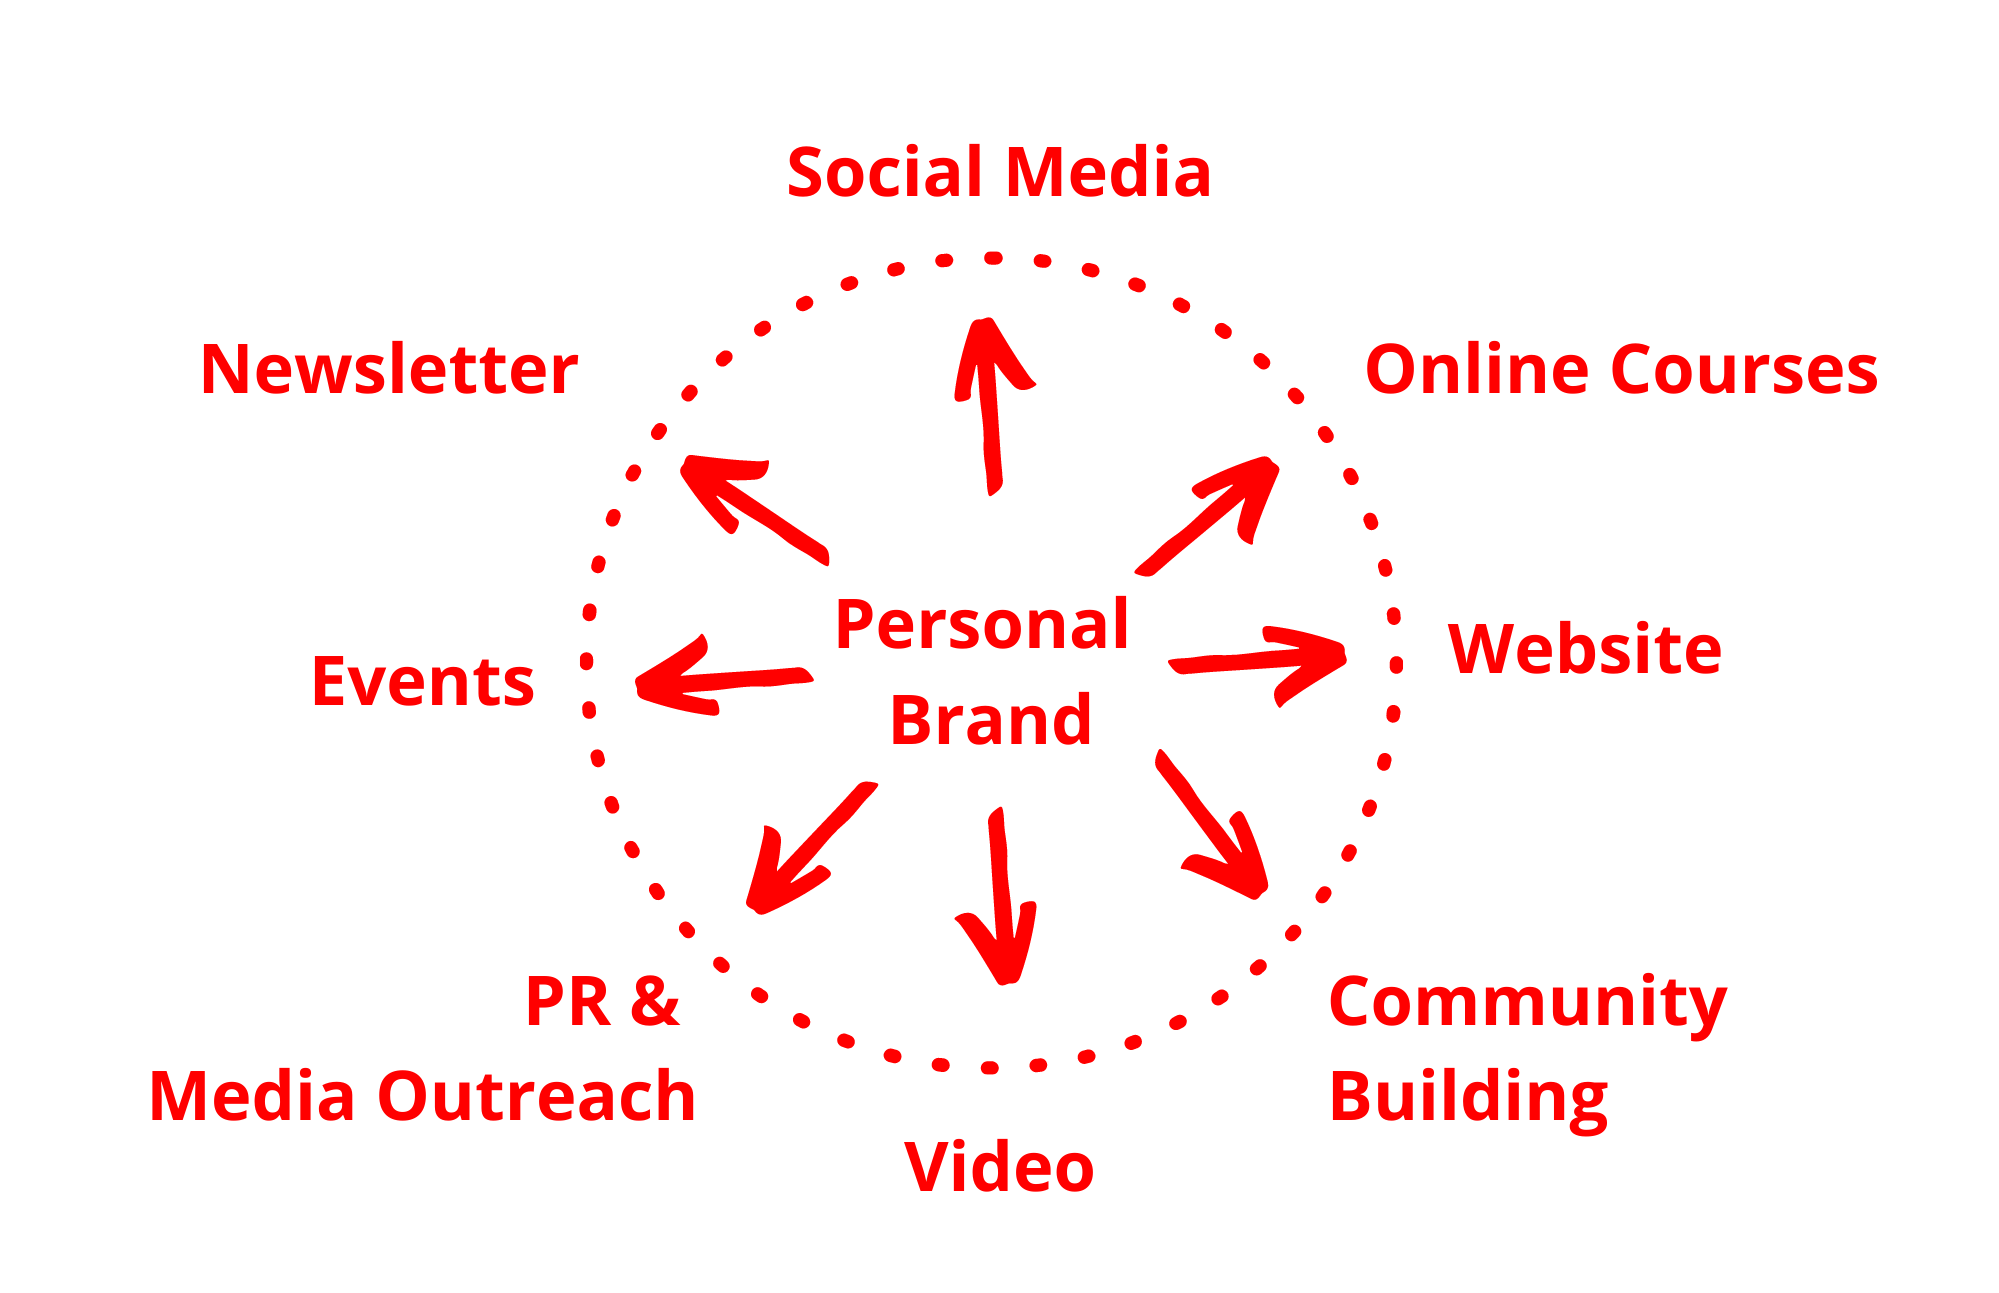 8 Different Channels to Build and Scale your Personal Brand